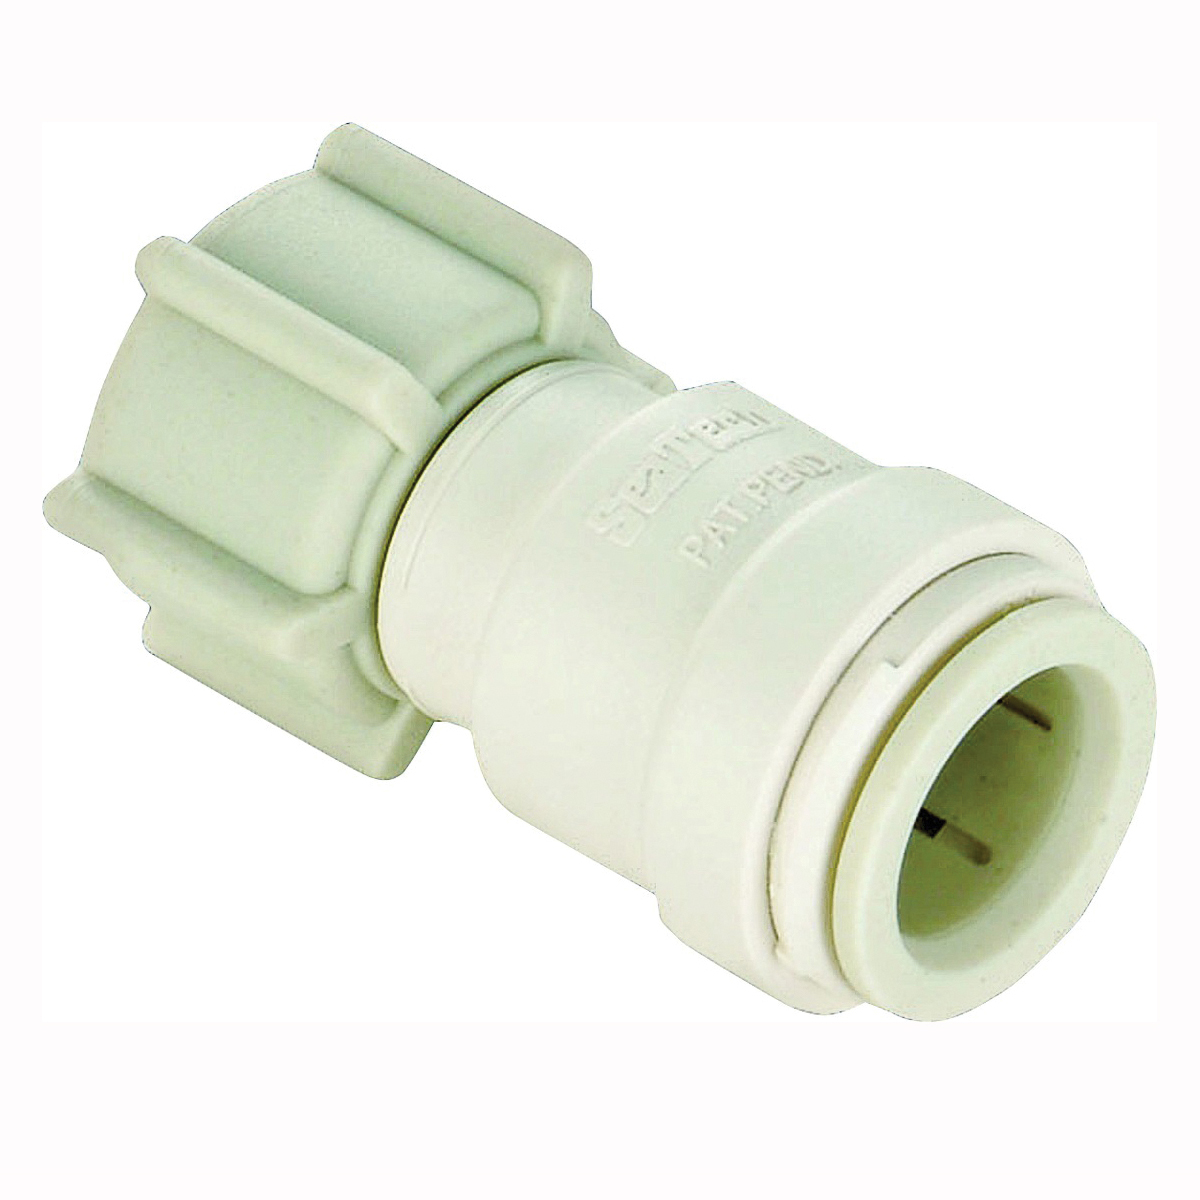 Picture of Watts 35 Series 3510-1412 Female Connector, 3/4 in CTS, 3/4 in NPS